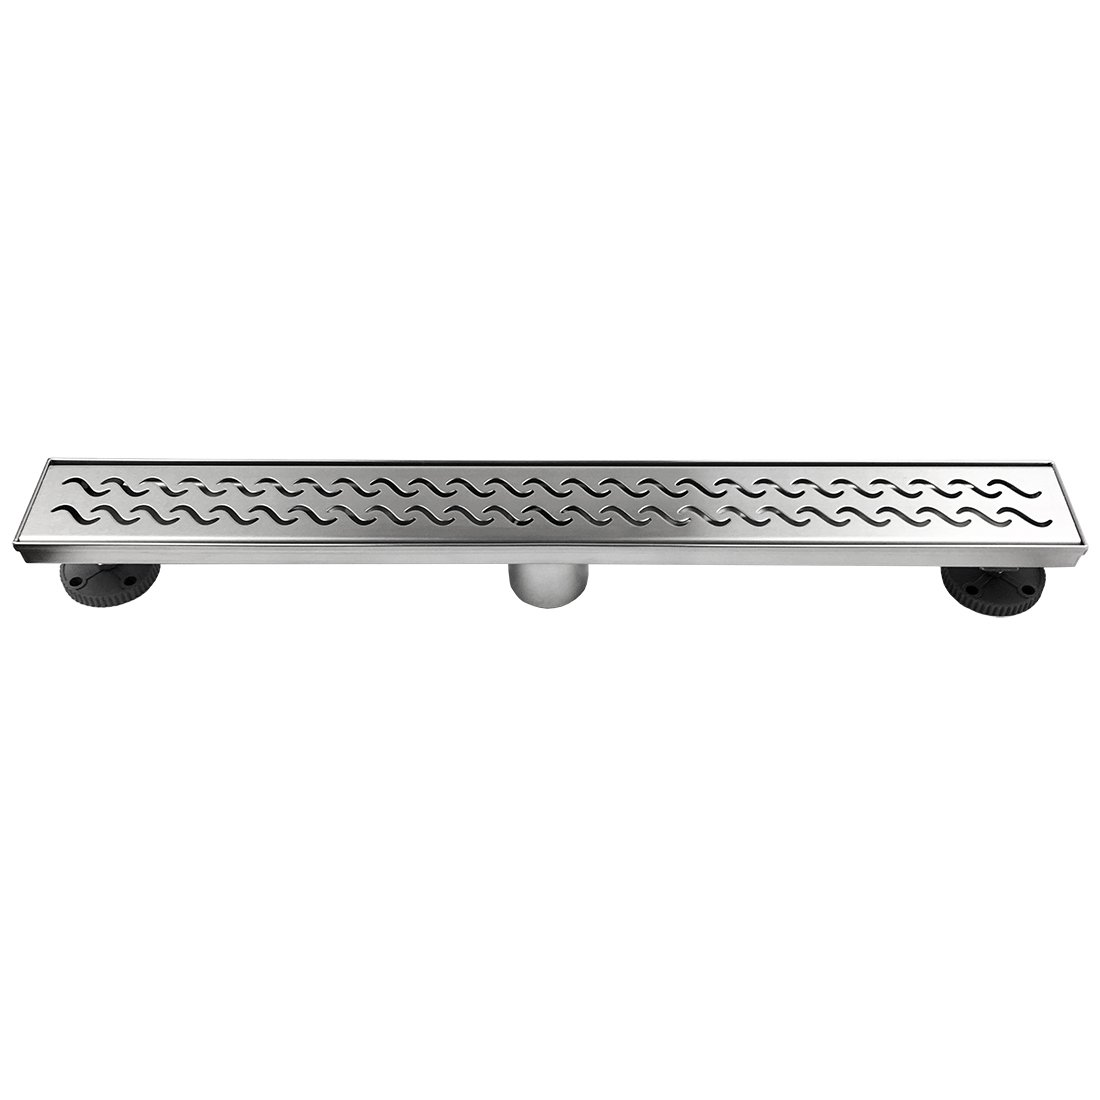 Neodrain 28 Inch Rectangular Linear Shower Drain with Slight Sea Grate, Brushed 304 Stainless Steel Bathroom Floor Drain,Shower Floor Drain Includes Adjustable Leveling Feet, Hair Strainer by Neodrain (Image #6)